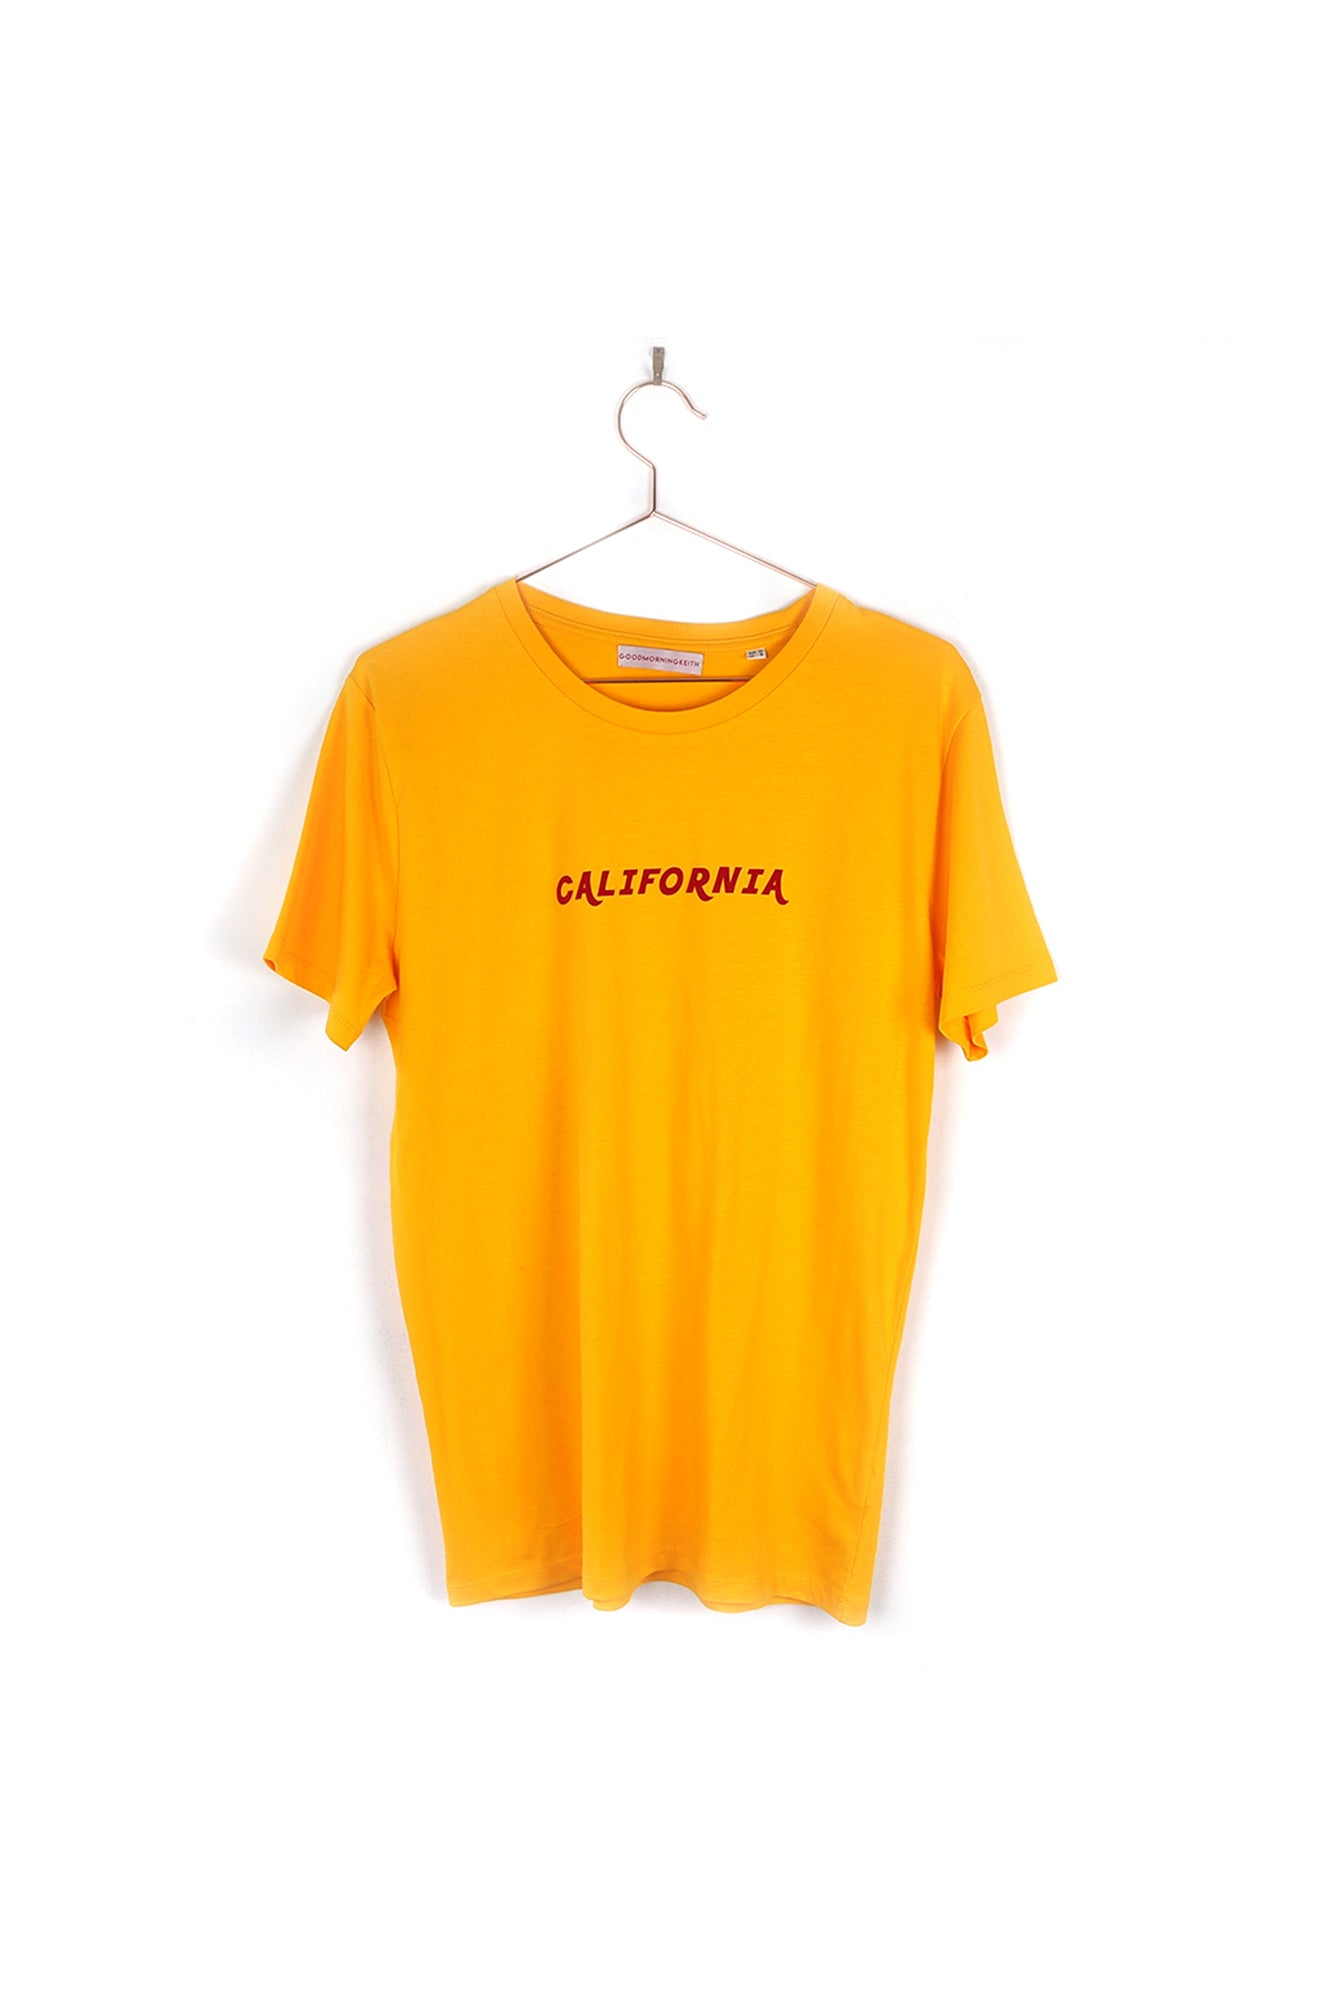 Vintage California spectra yellow tee Good Morning Keith  in red velvet